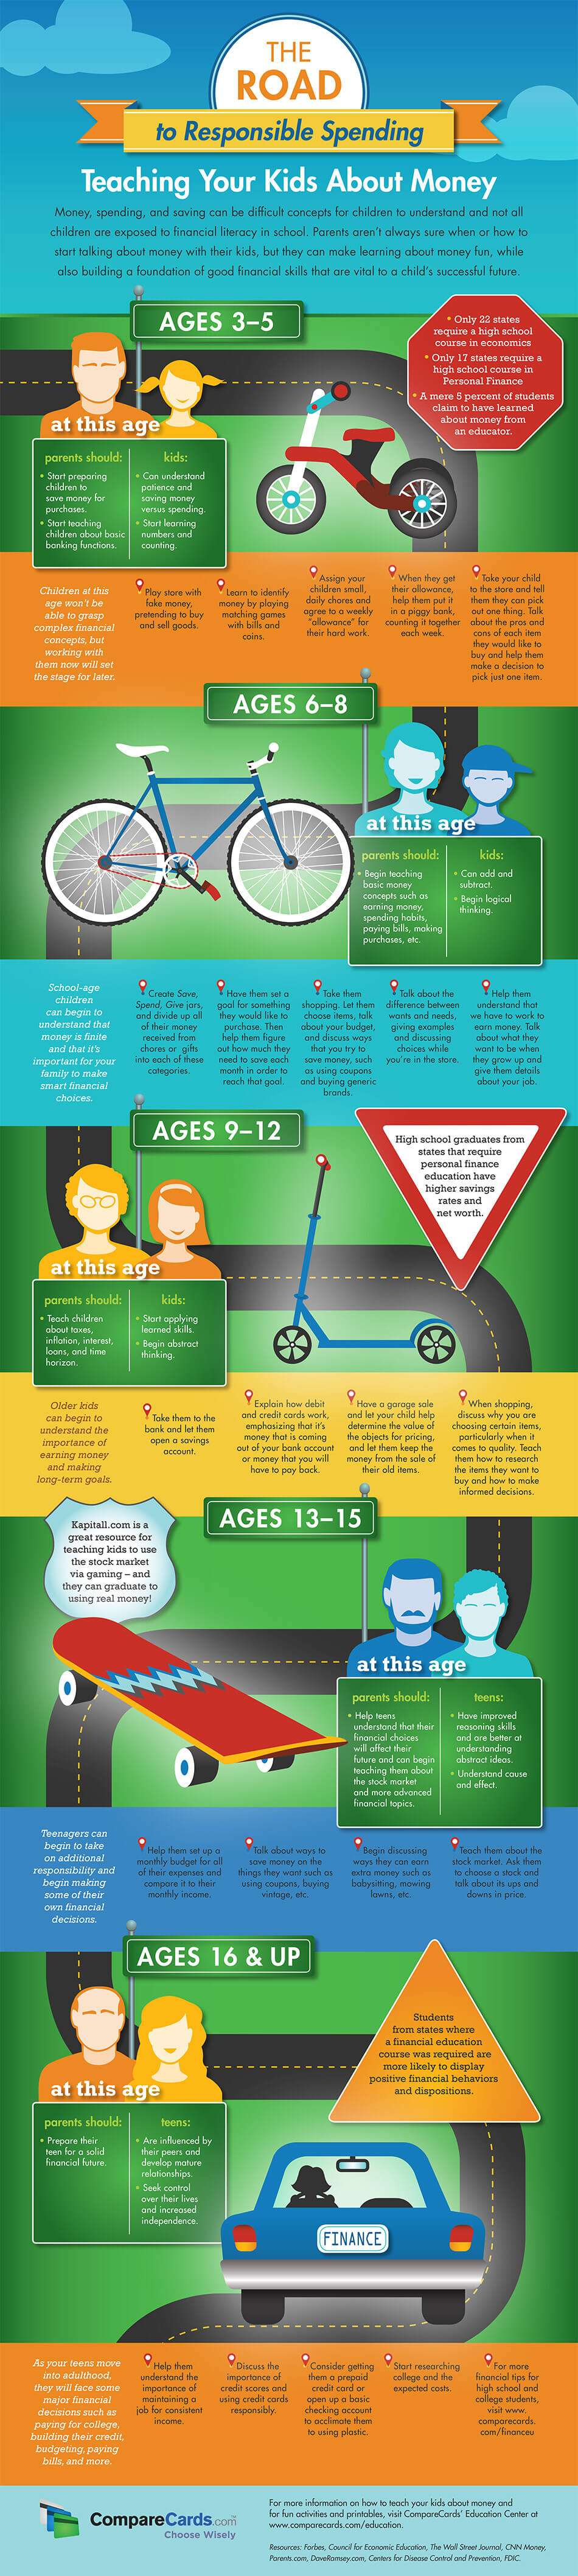 teaching-your-kids-about-money-infographic